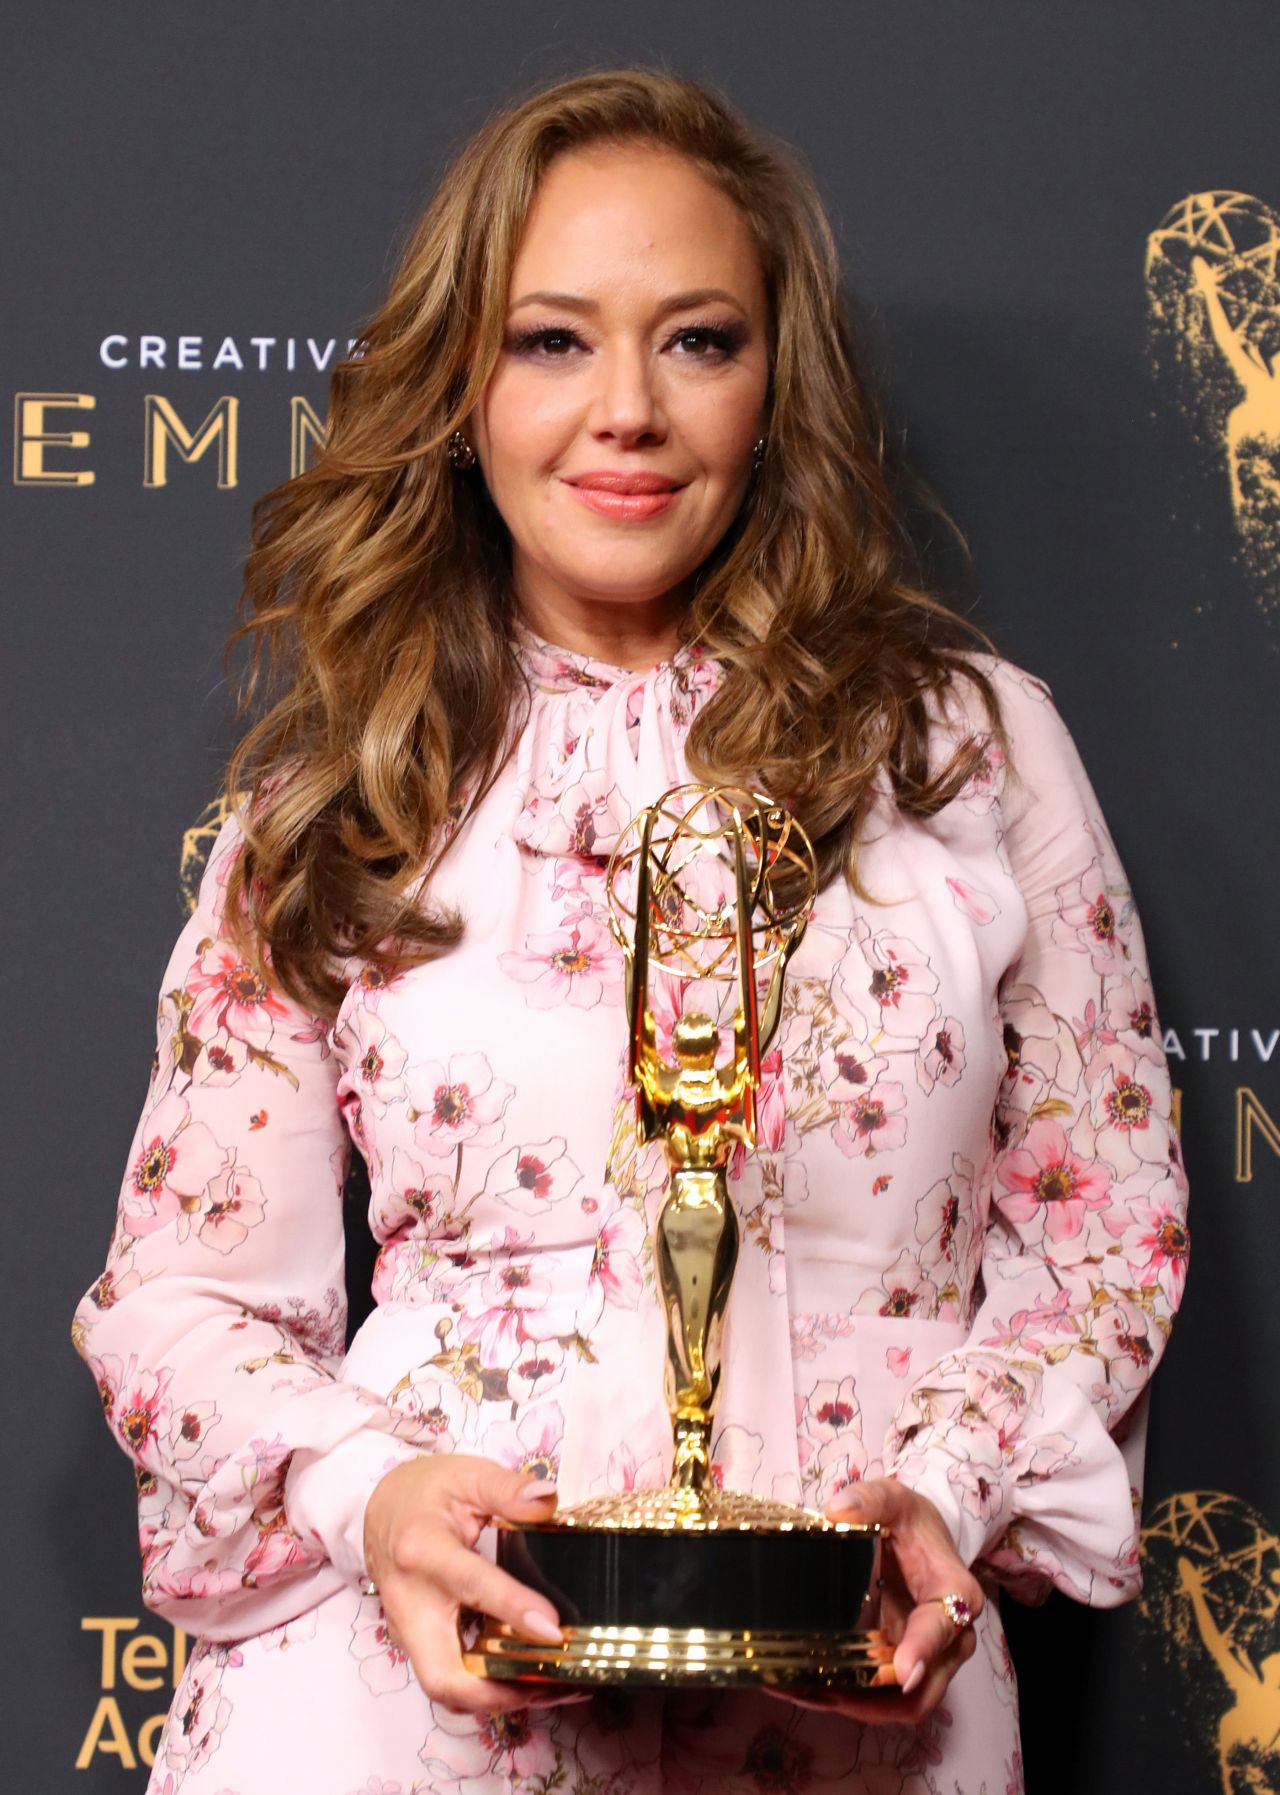 Leah Remini showing her Emmy Award